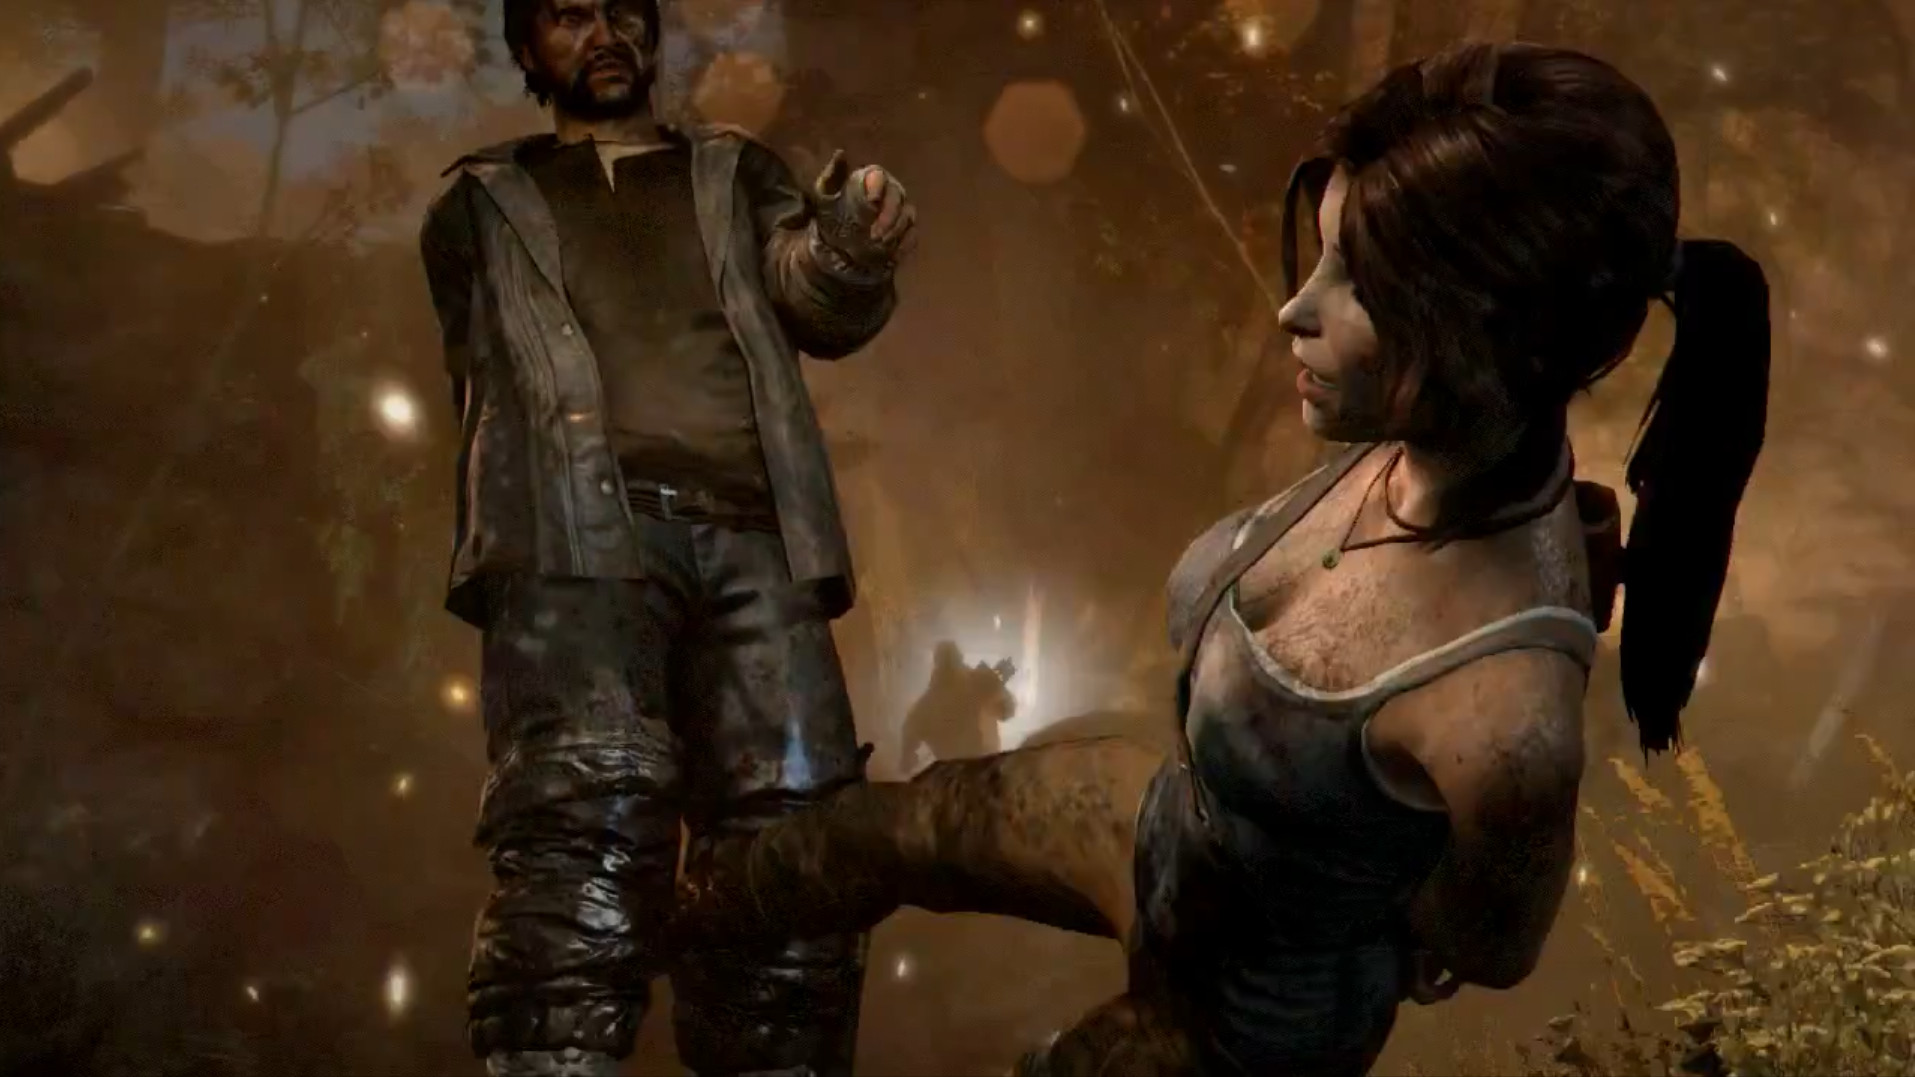 NYCC 2012 Preview: Tomb Raider